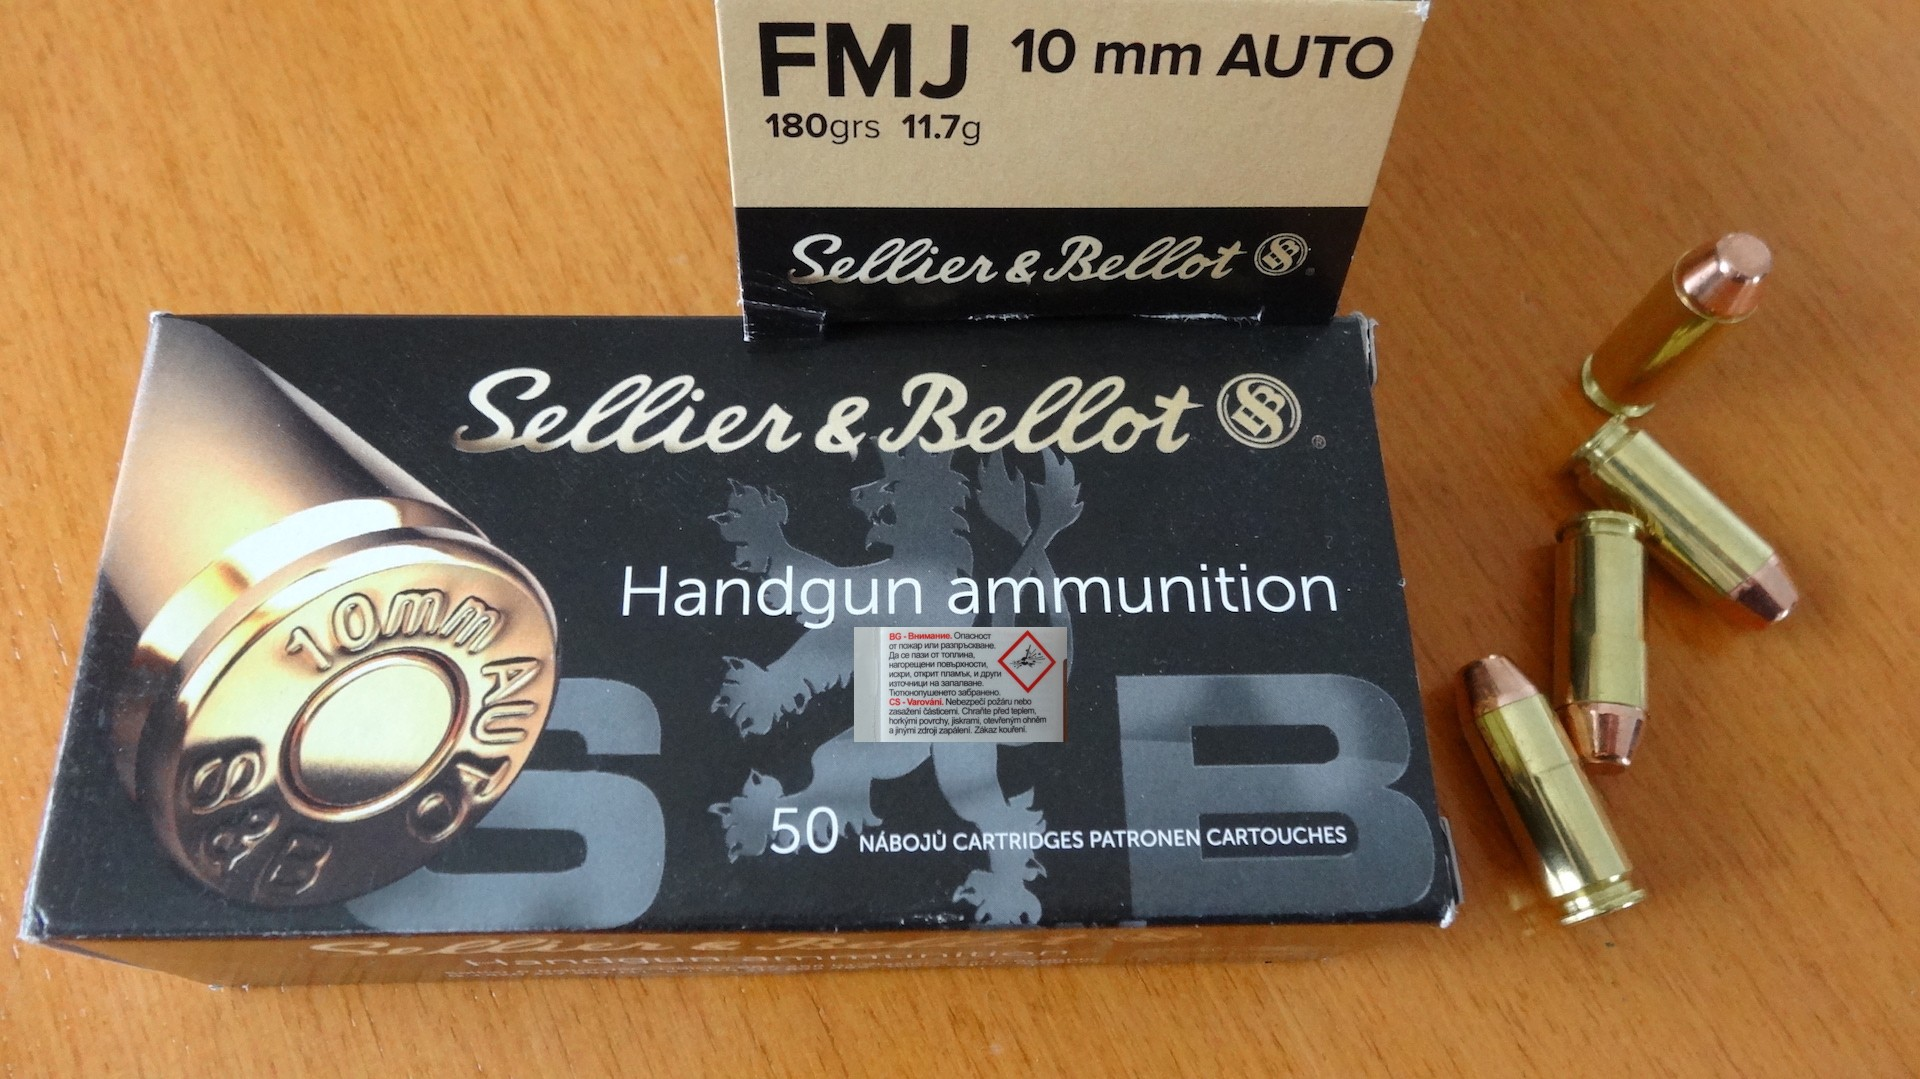 Sellier & Bellot, S+B 10mm Auto FMJ 180grs.